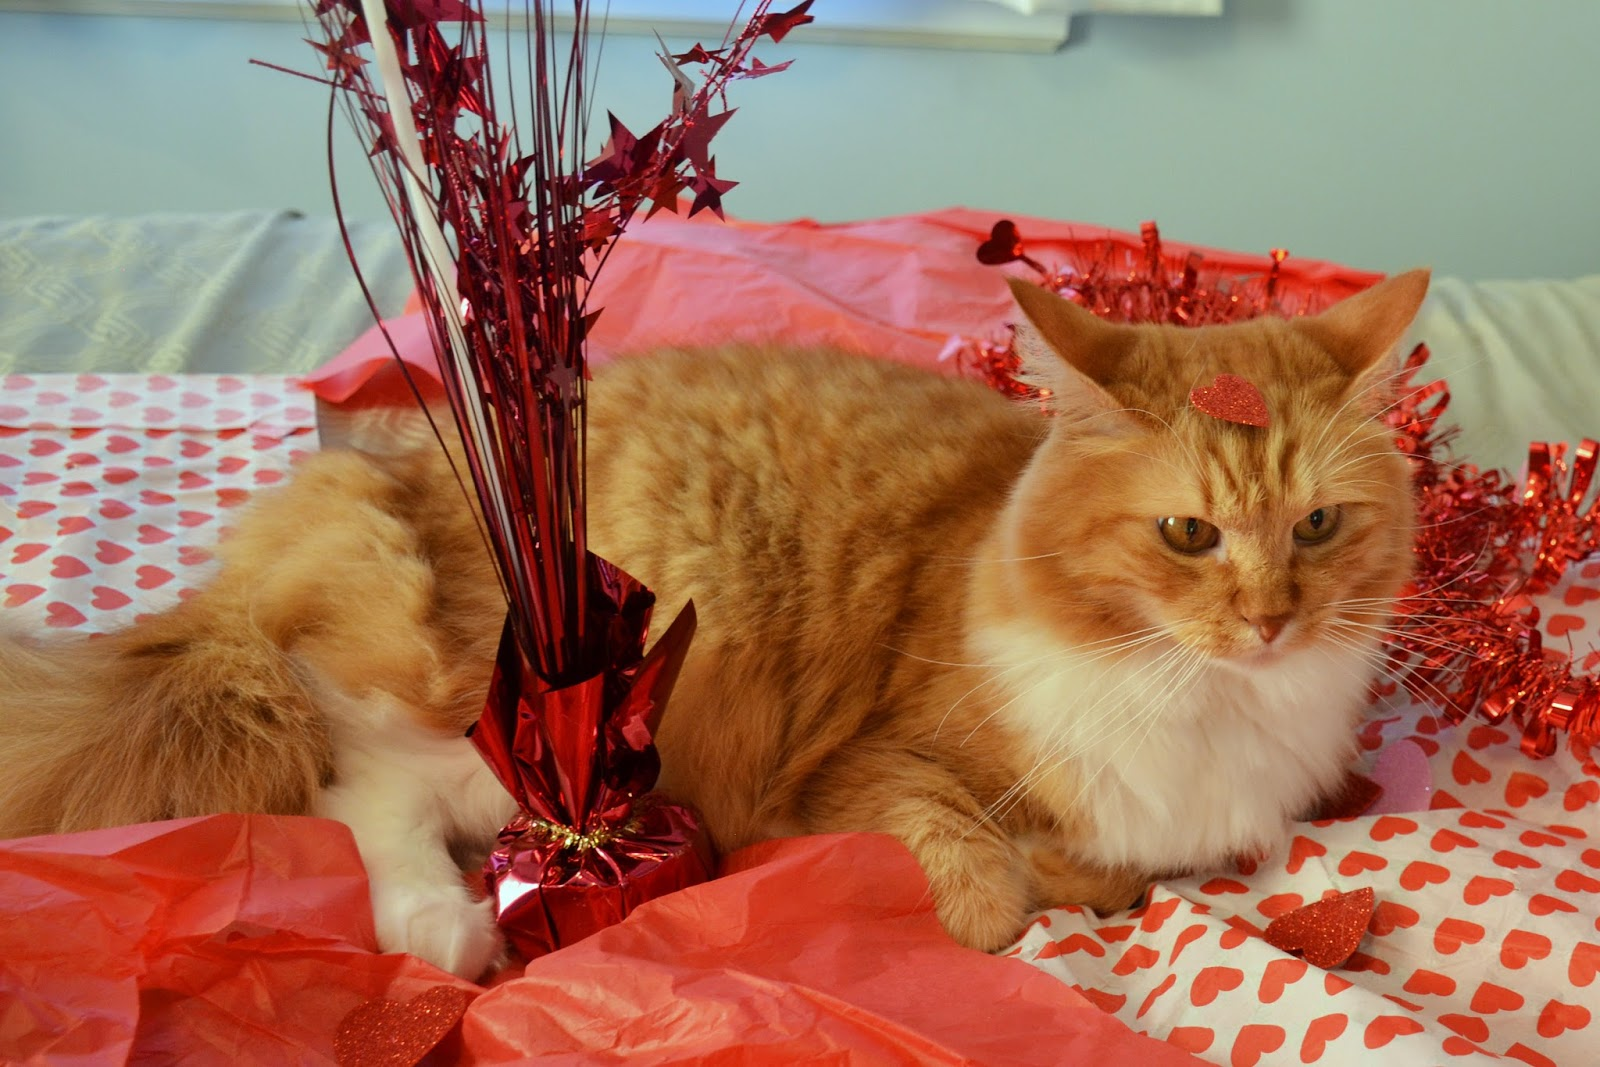 Lostvestige: Cat Photos Friday #97- Valentine's Day Outtakes